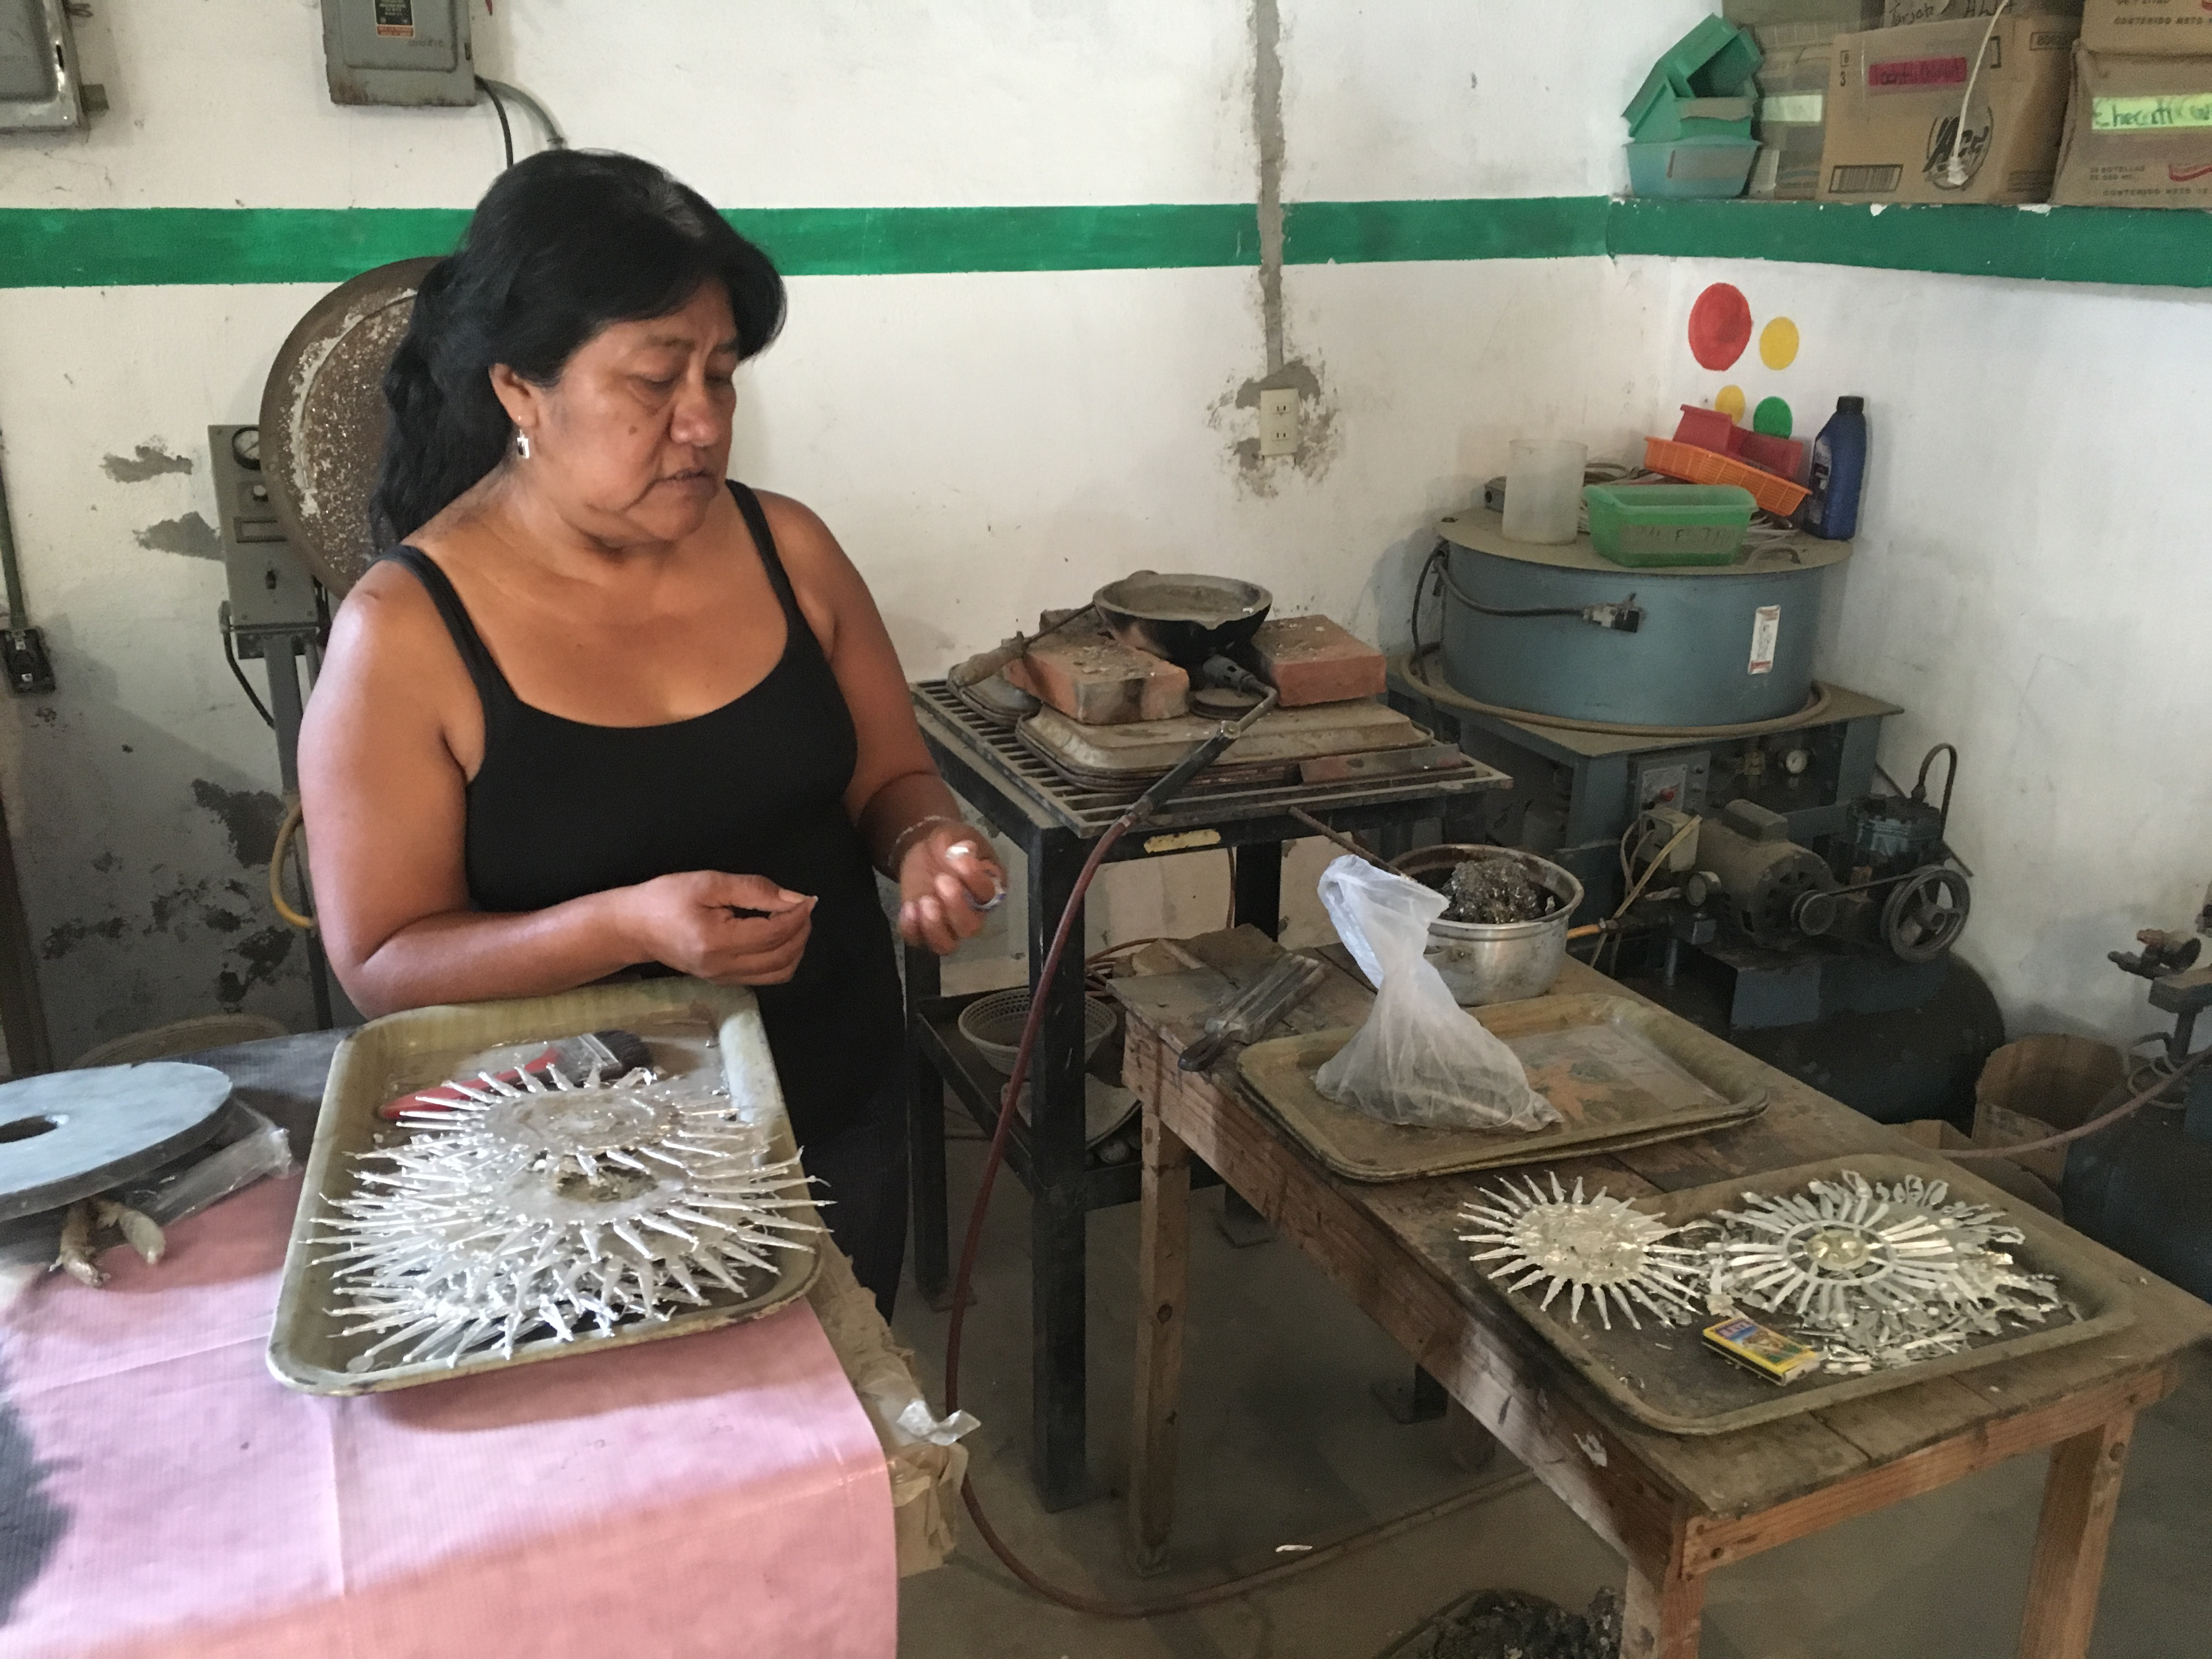 Paula a fair trade artisan in Mexico, working on jewelry in her workshop | Fair Anita